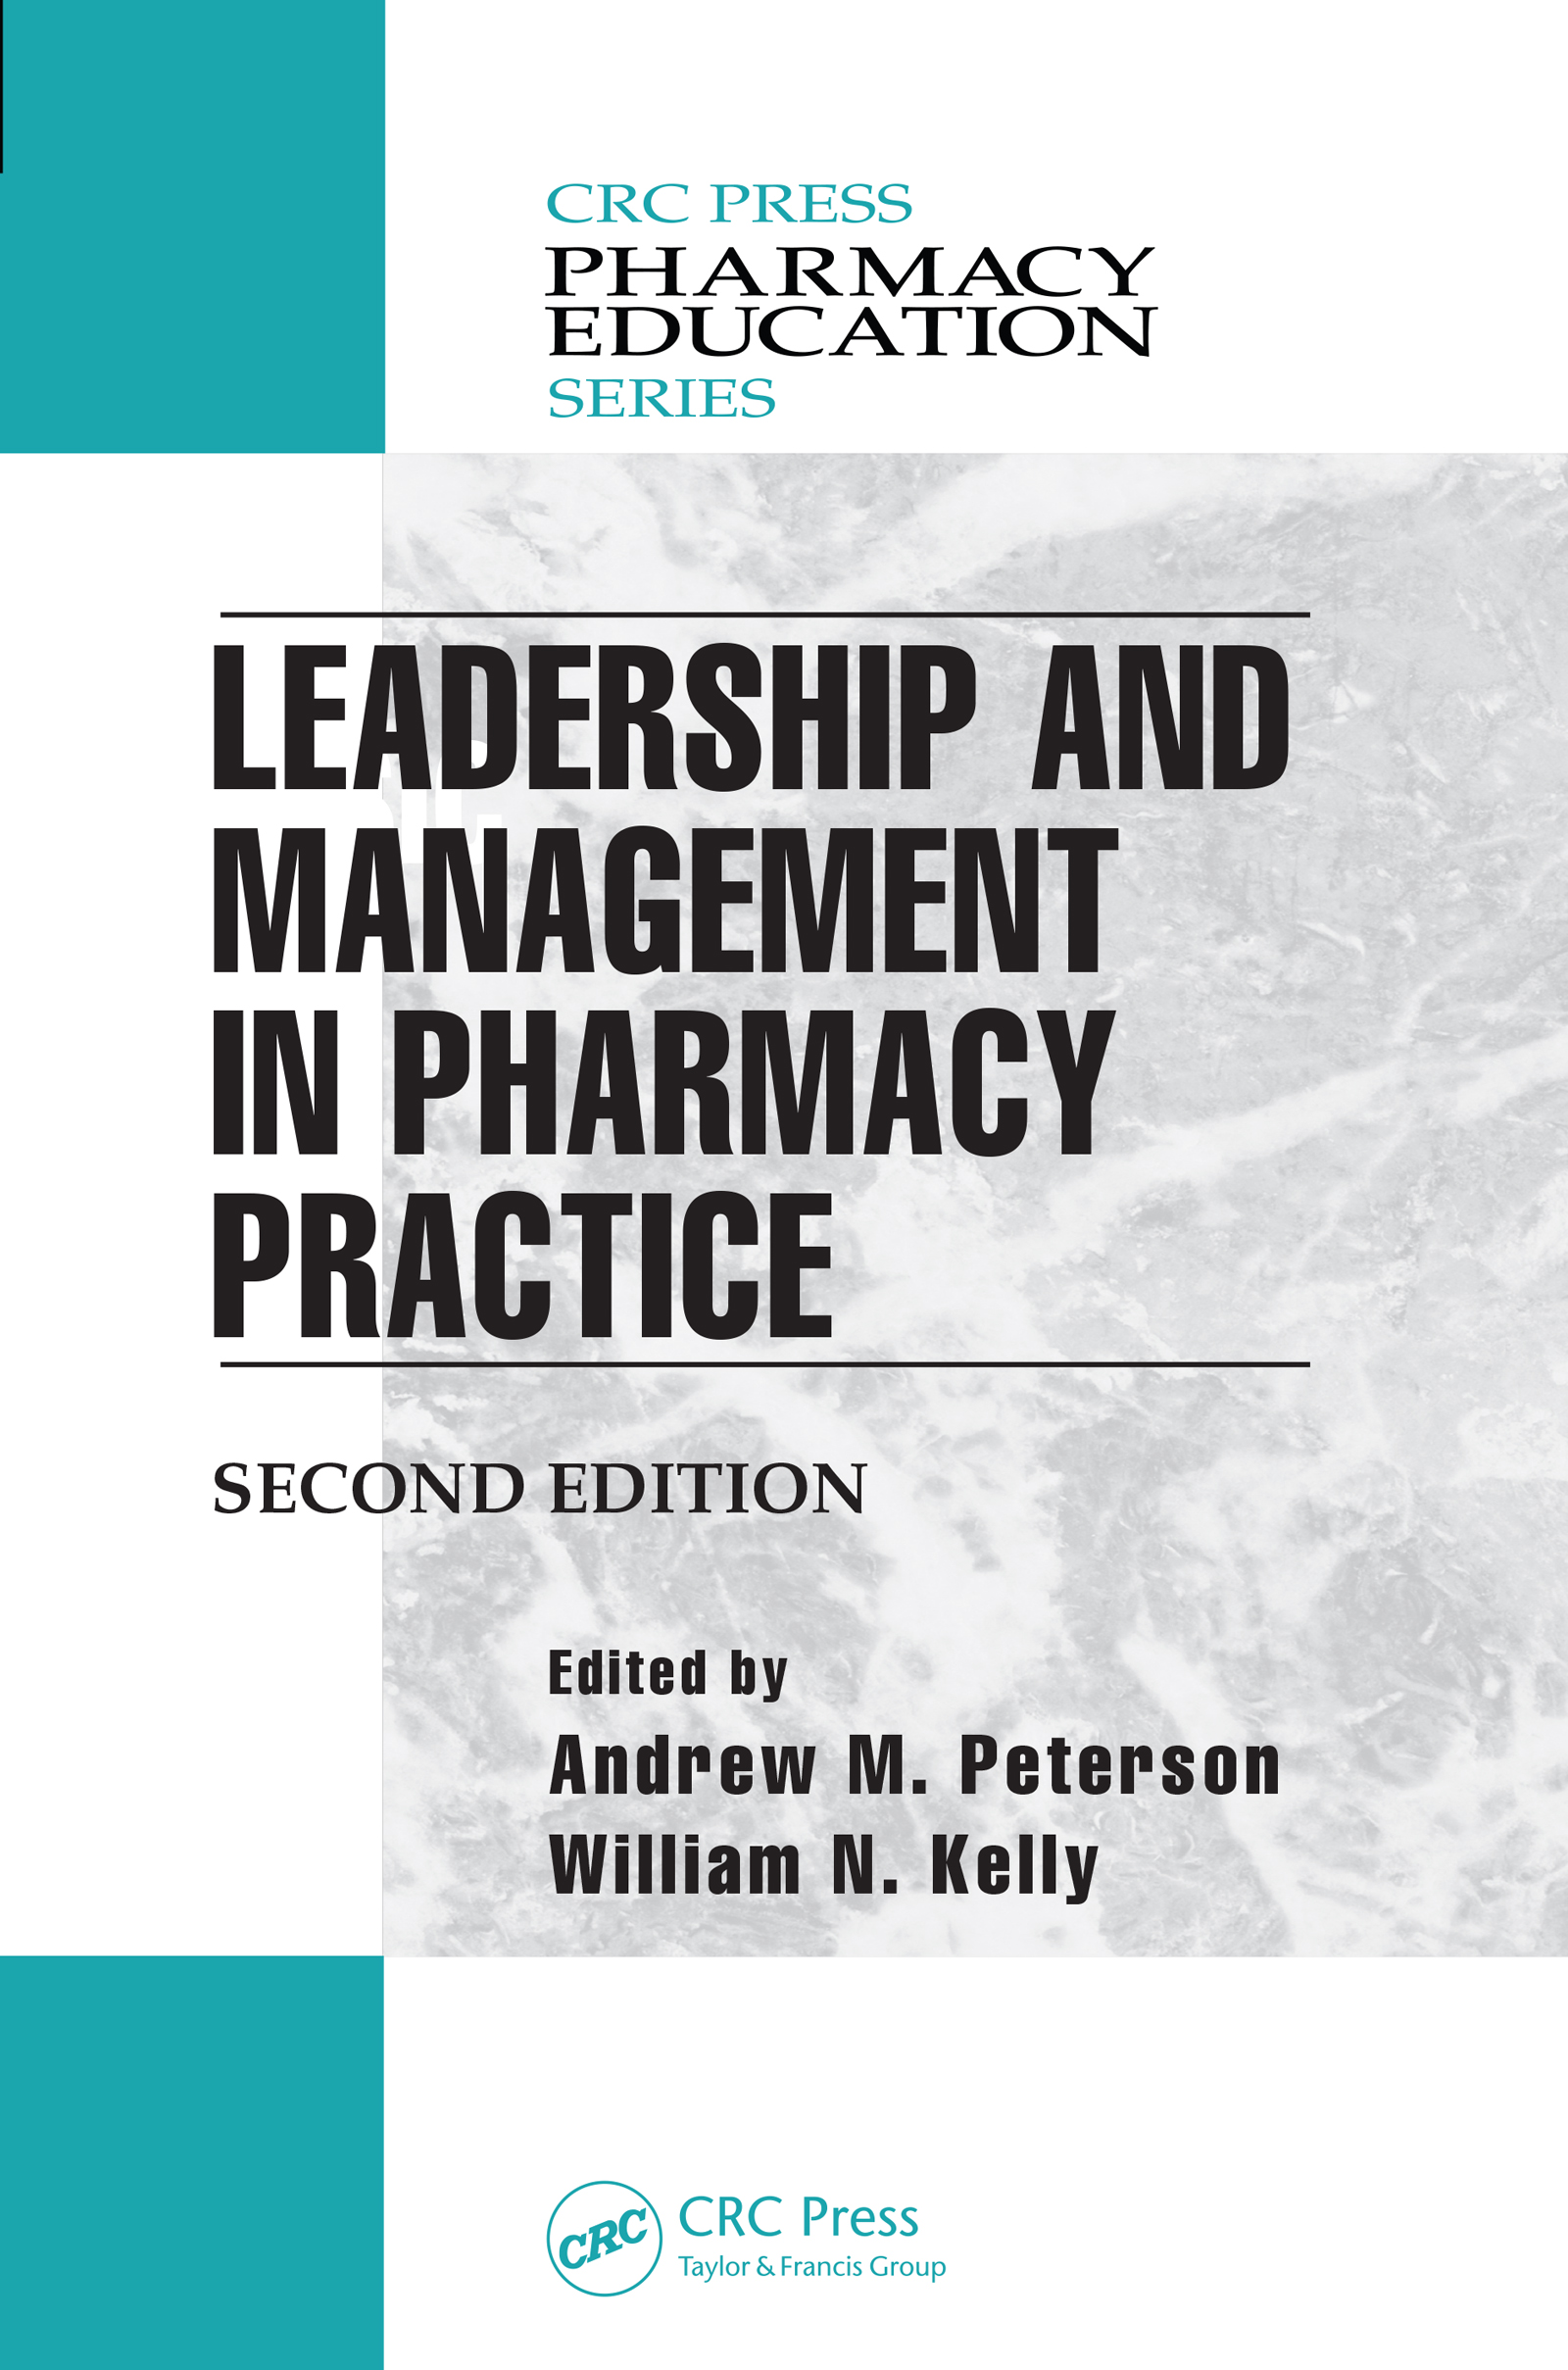 Download Ebook Leadership and Management in Pharmacy Practice (2nd ed.) by MD Karch Pdf